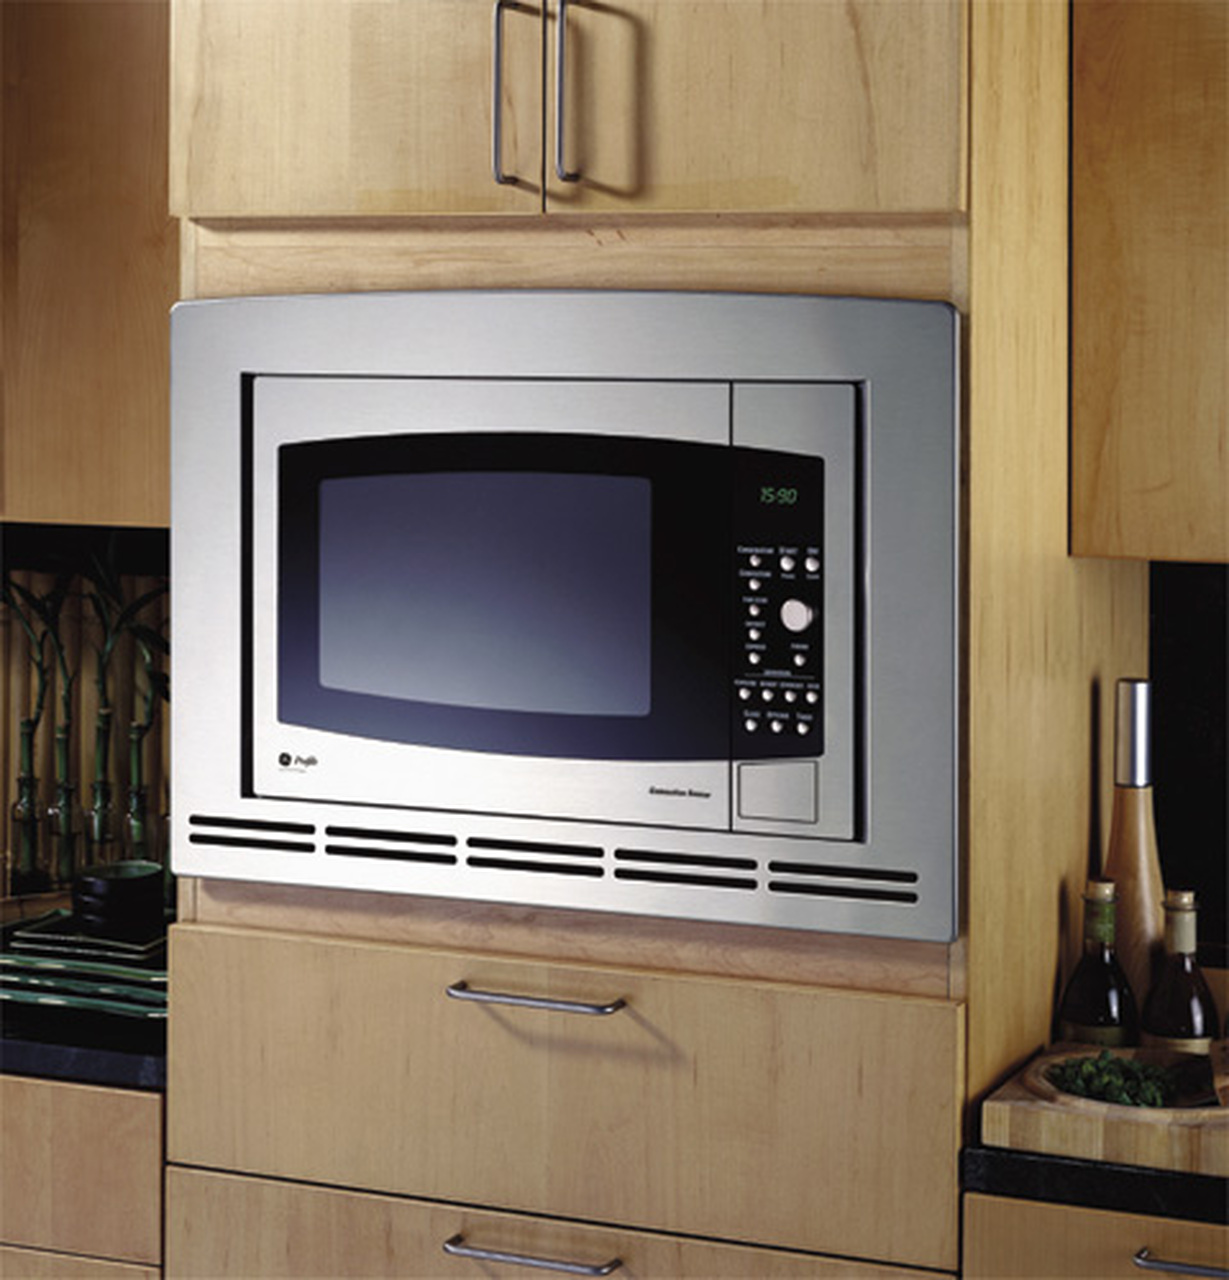 ge profile countertop convection microwave oven je1590sh